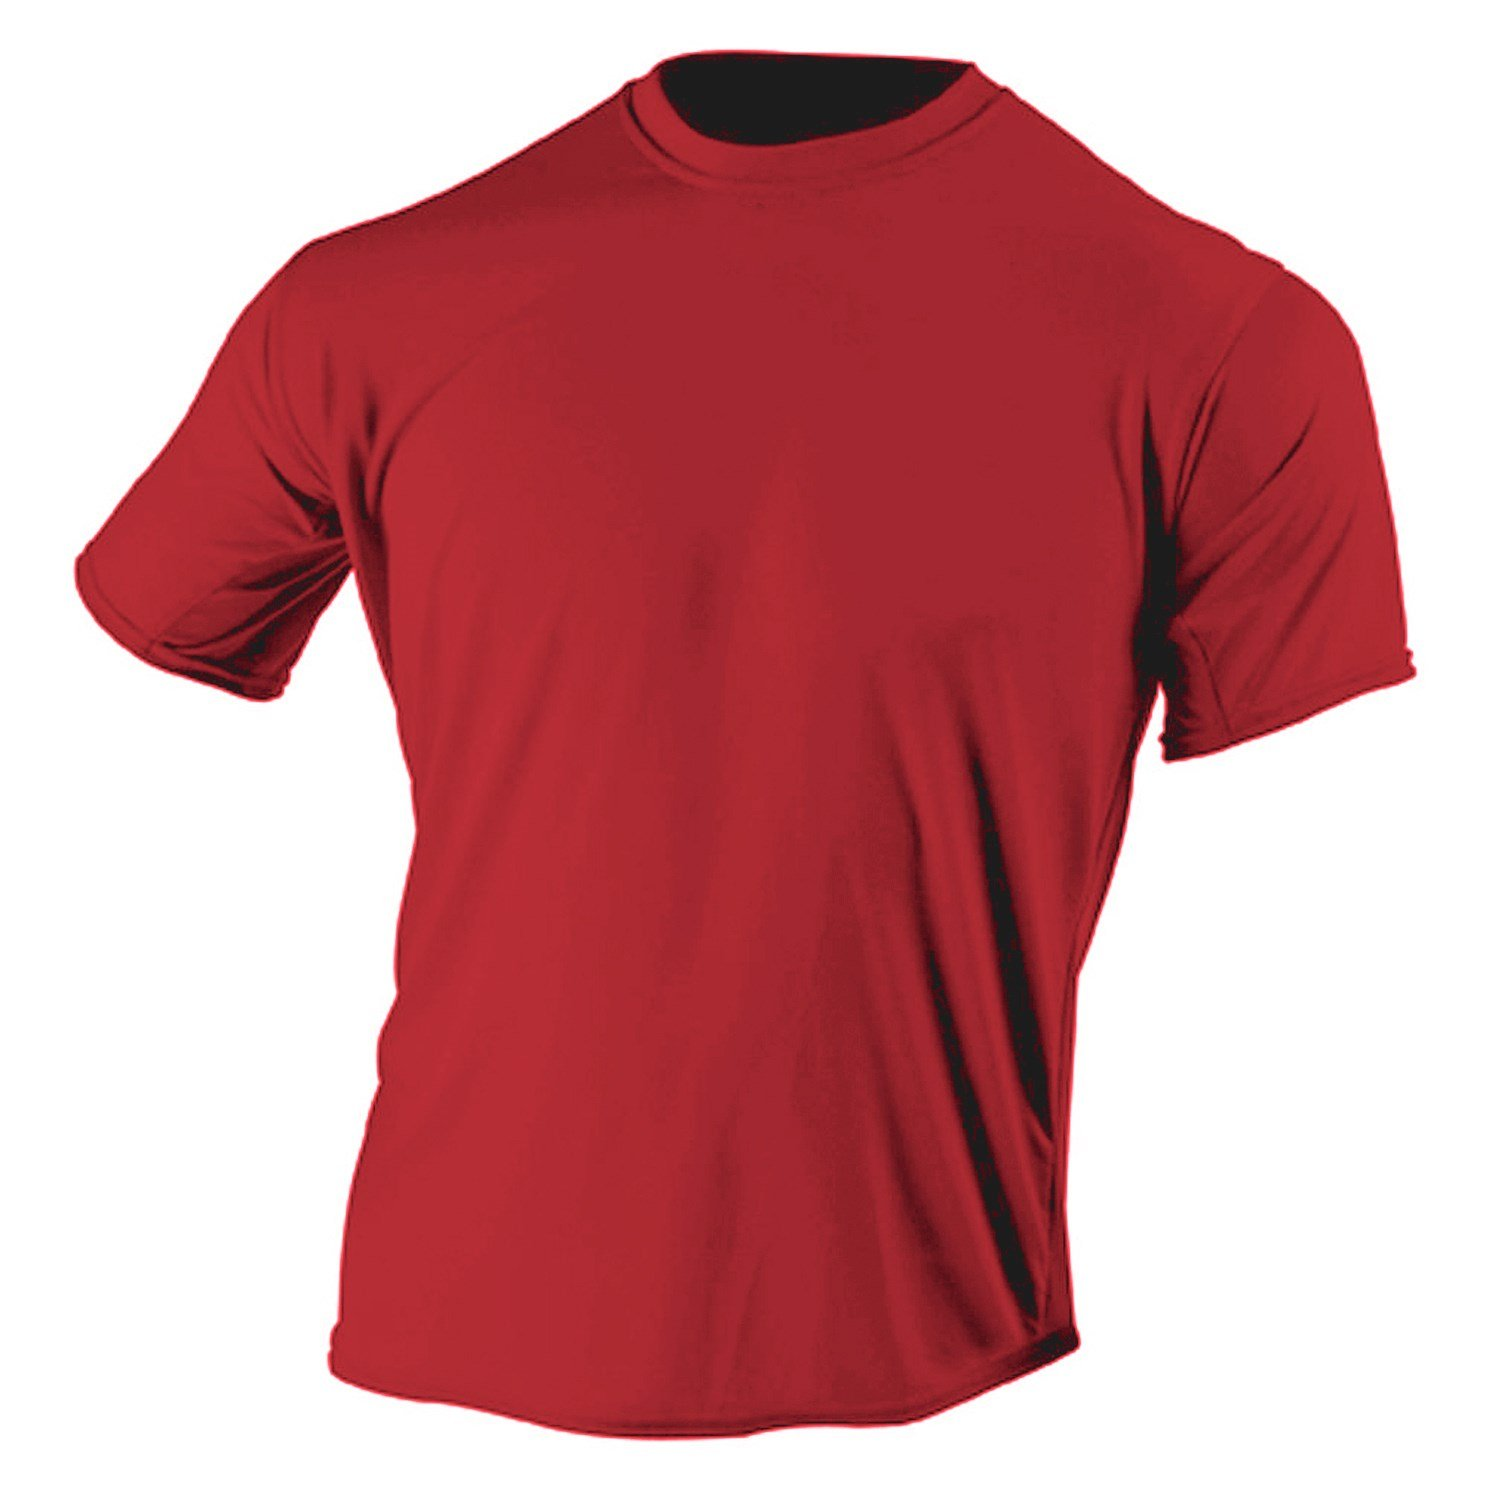 McDavid 905T Mens Half Sleeve Referee Cutcrew T Shirt Scarlet Small [Misc.]